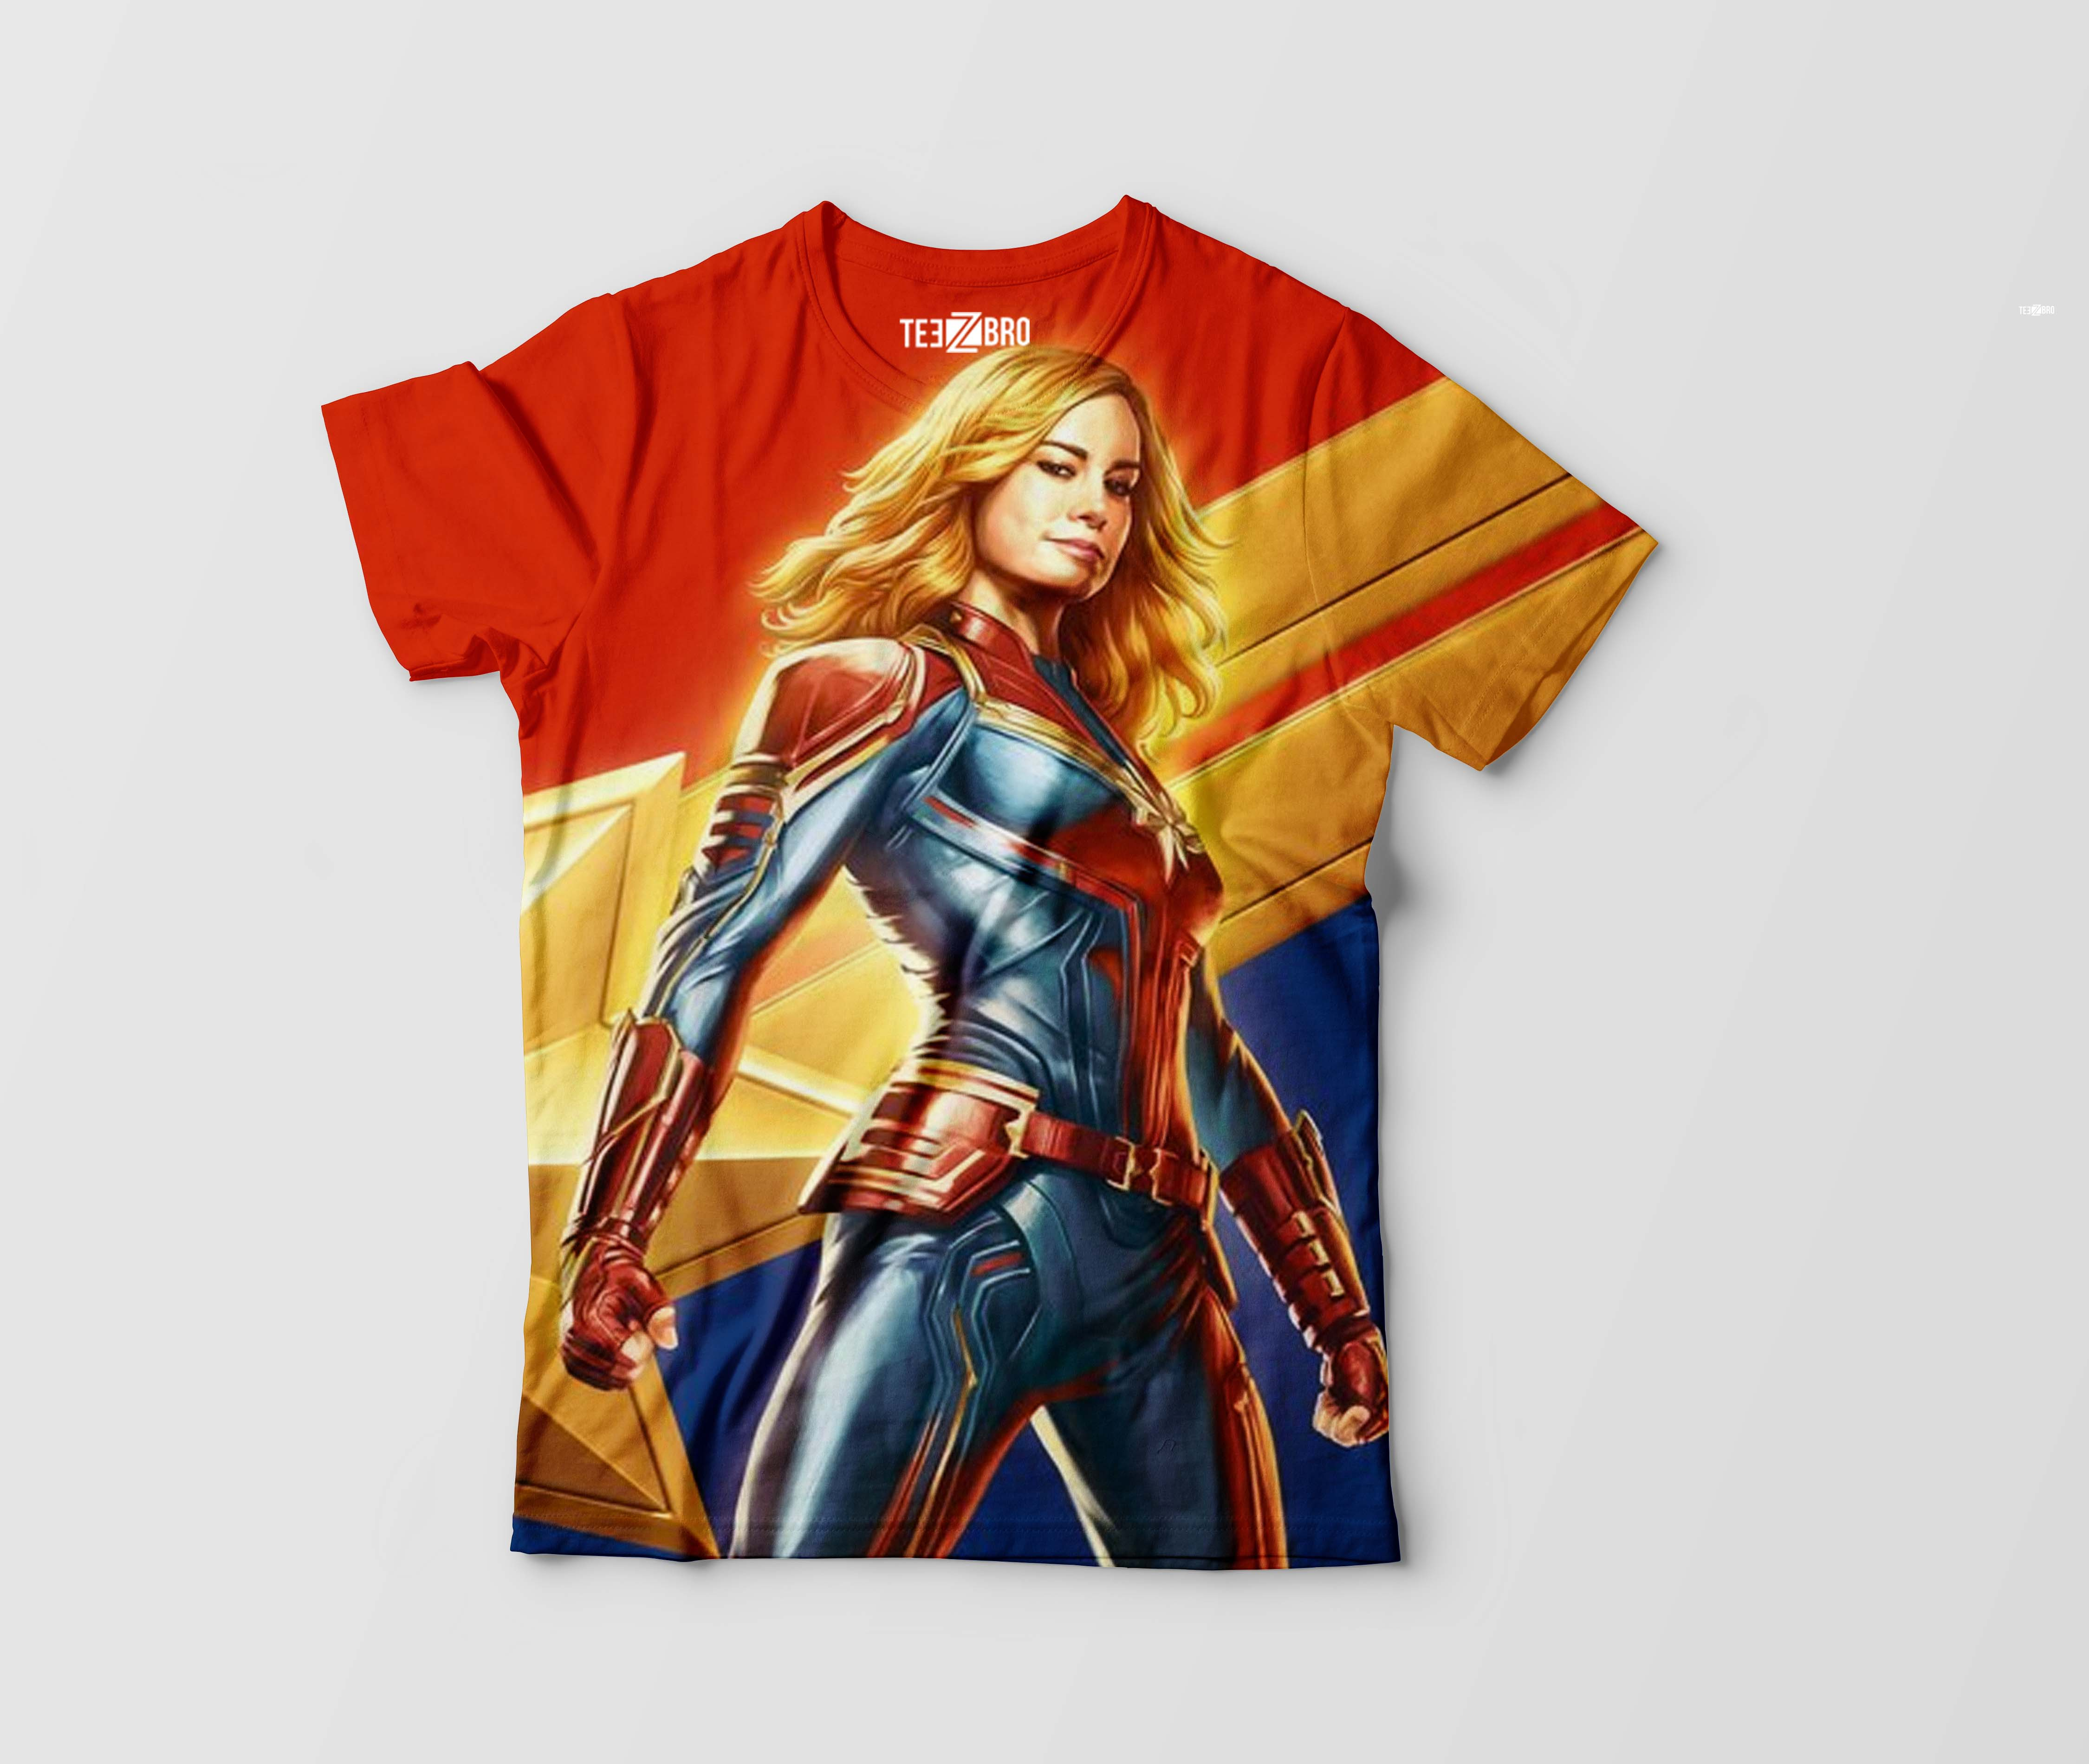 61553ddd Captain Marvel Graphical Tshirts - Teez Bro